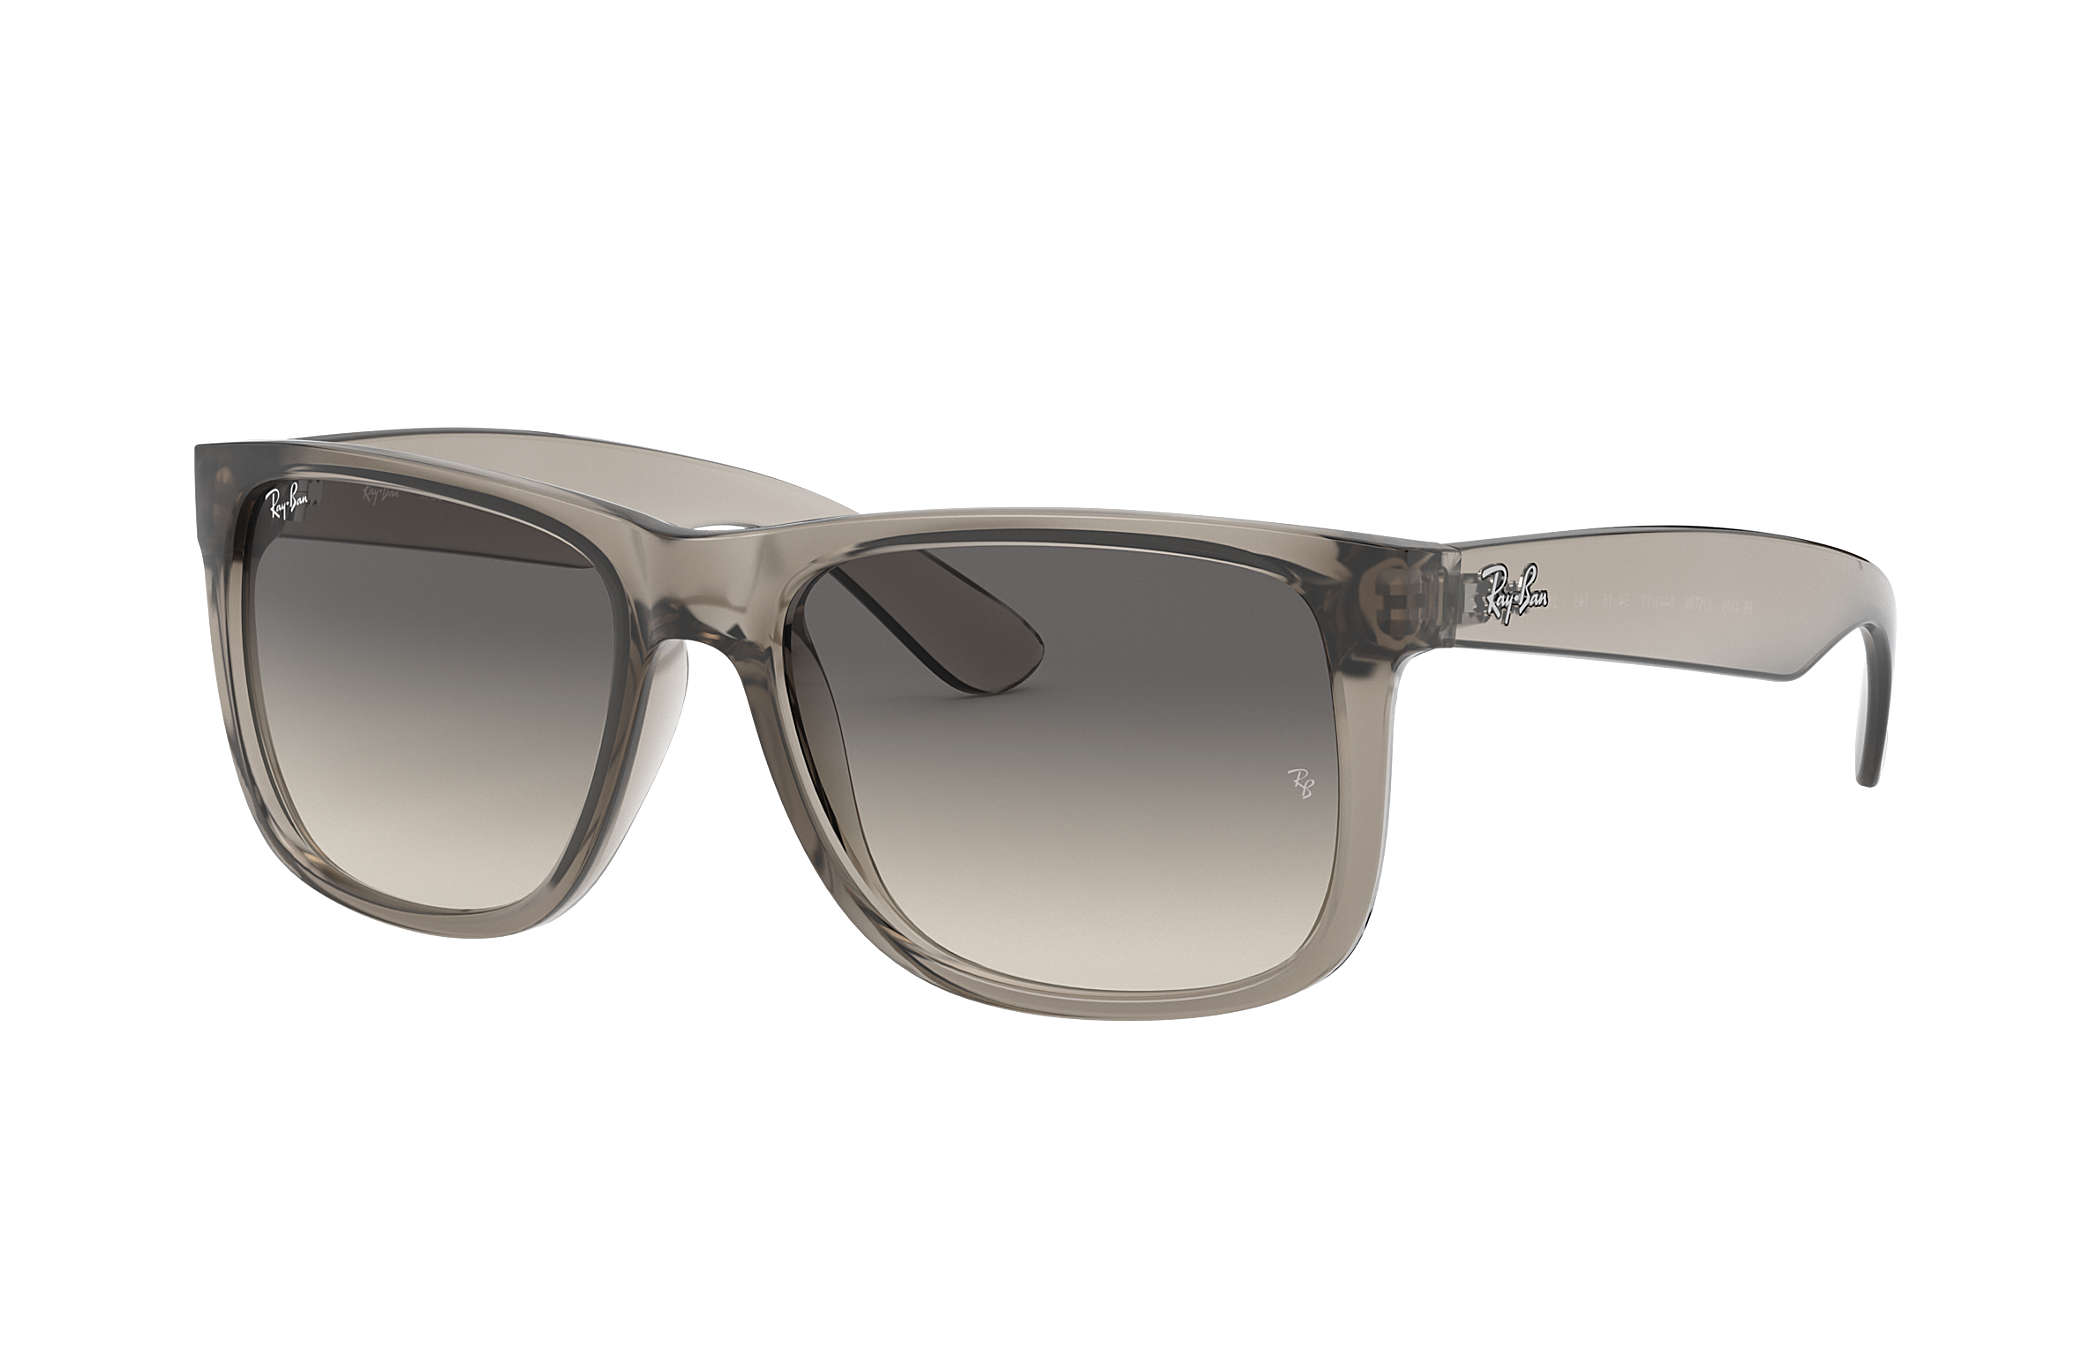 Ray Ban Justin Exclusive Rb4165 Transparent Grey Nylon Grey Lenses 0rb416564491155 Ray Ban Usa Find great deals on ebay for transparent sunglasses. check out the justin exclusive at ray ban com